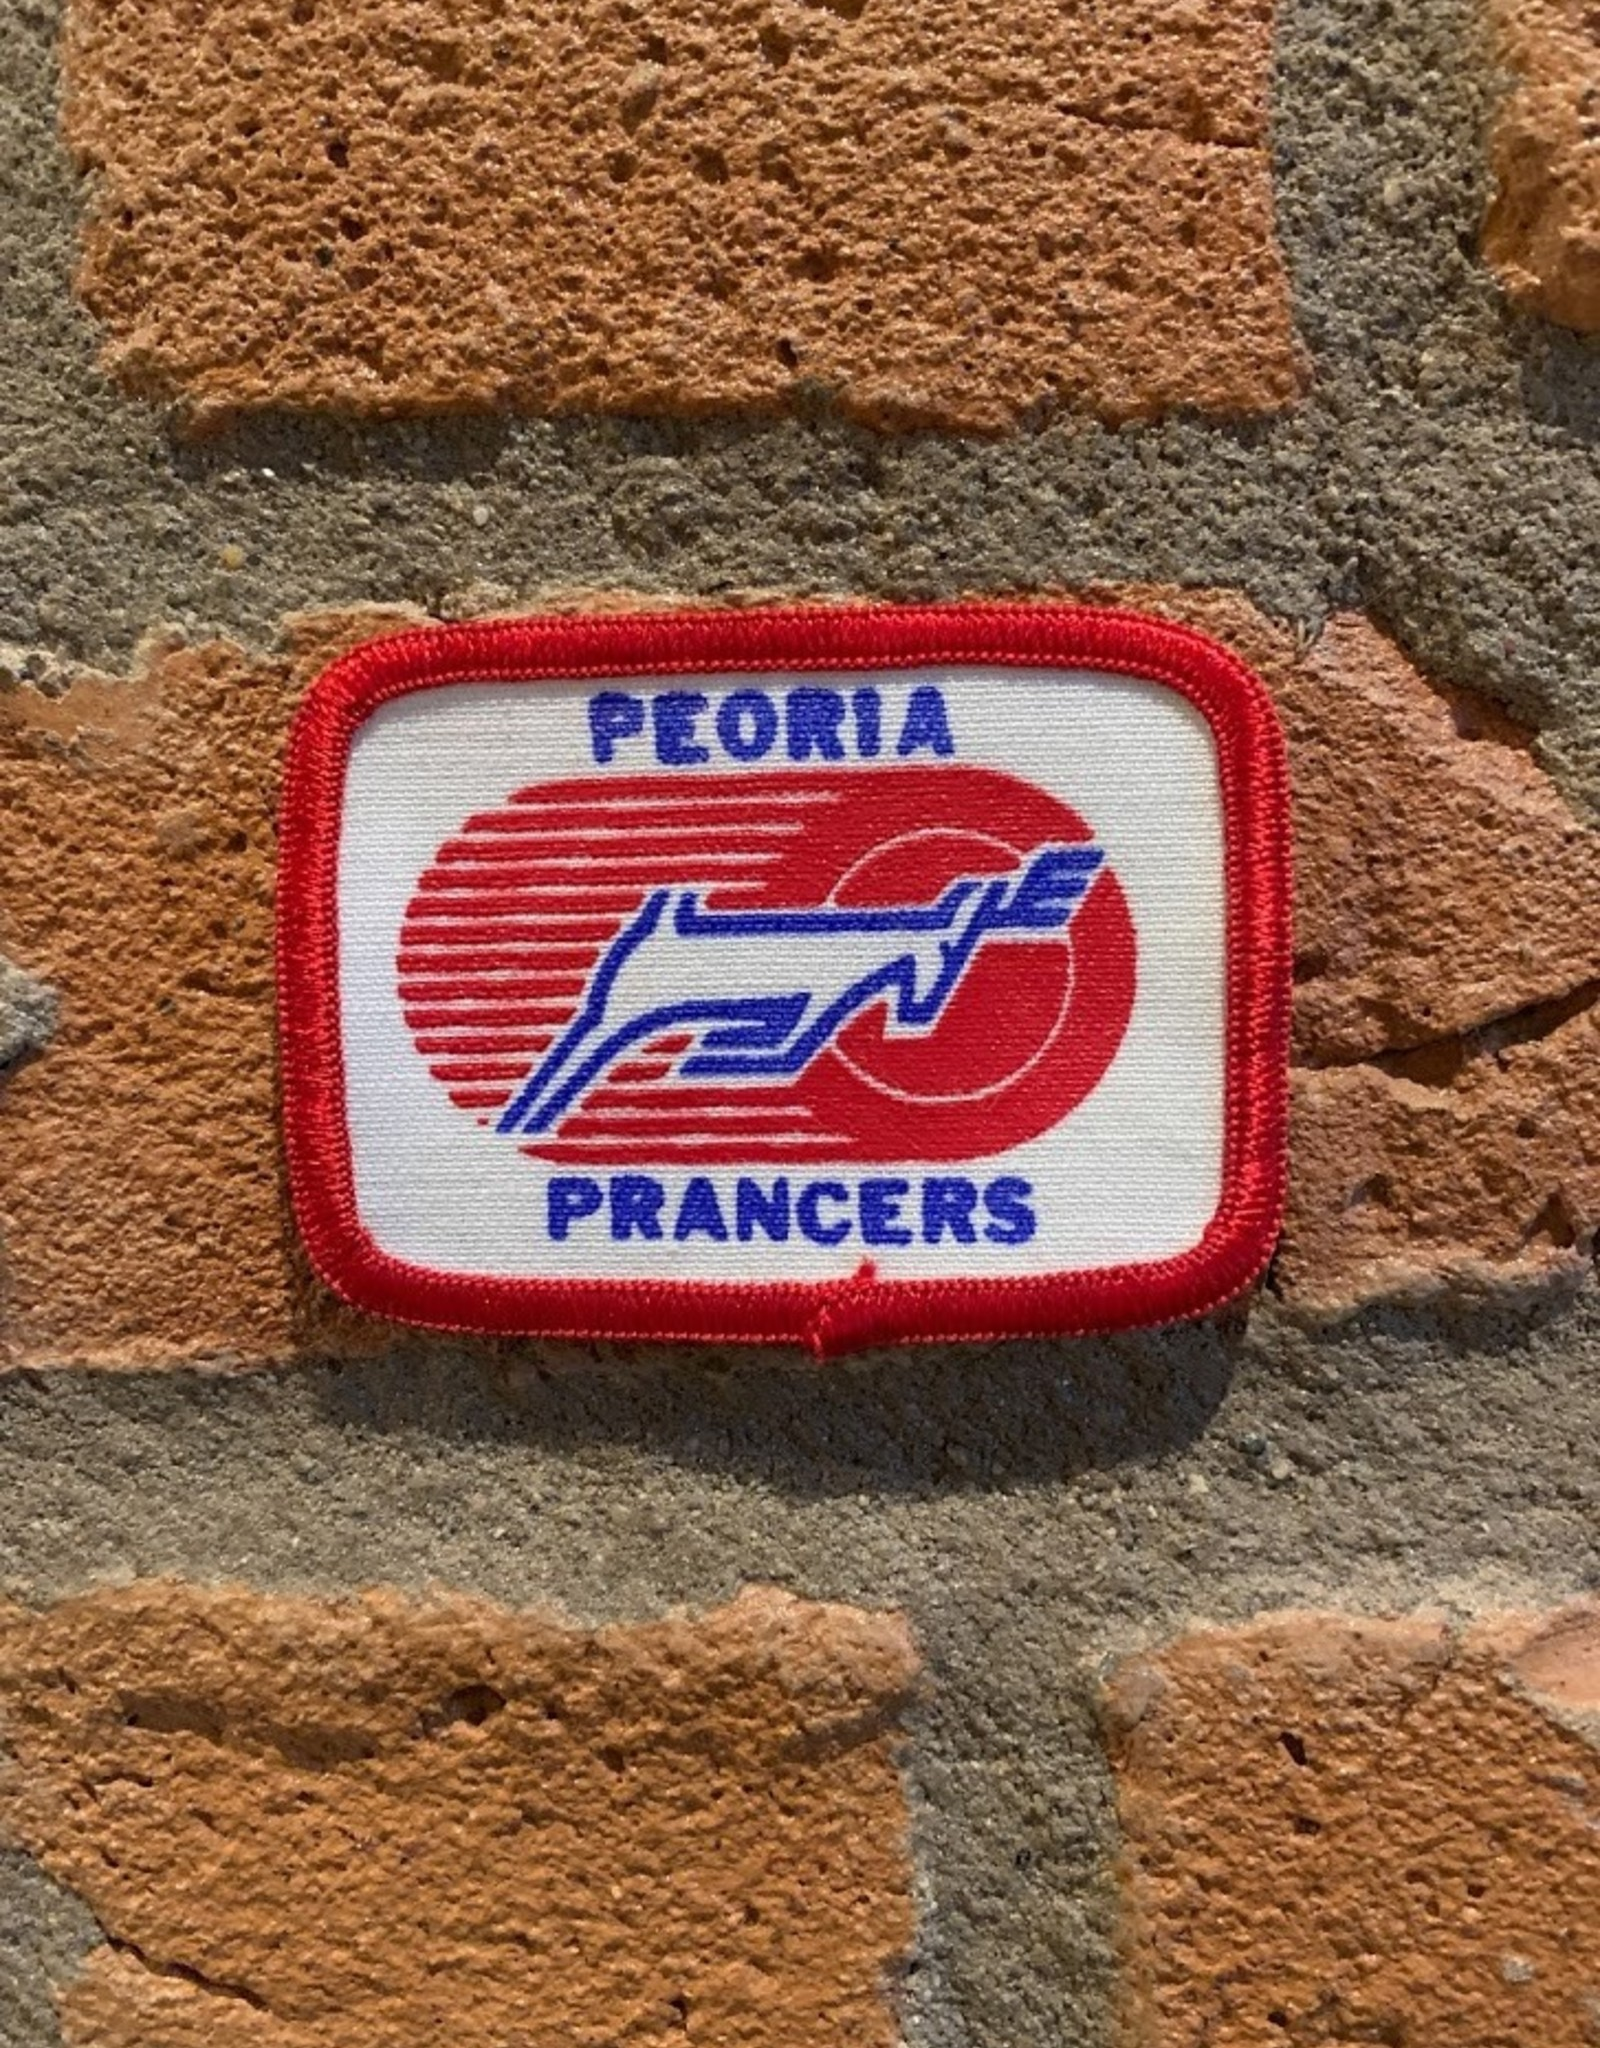 UA Merch Peoria Prancers Vintage Patch